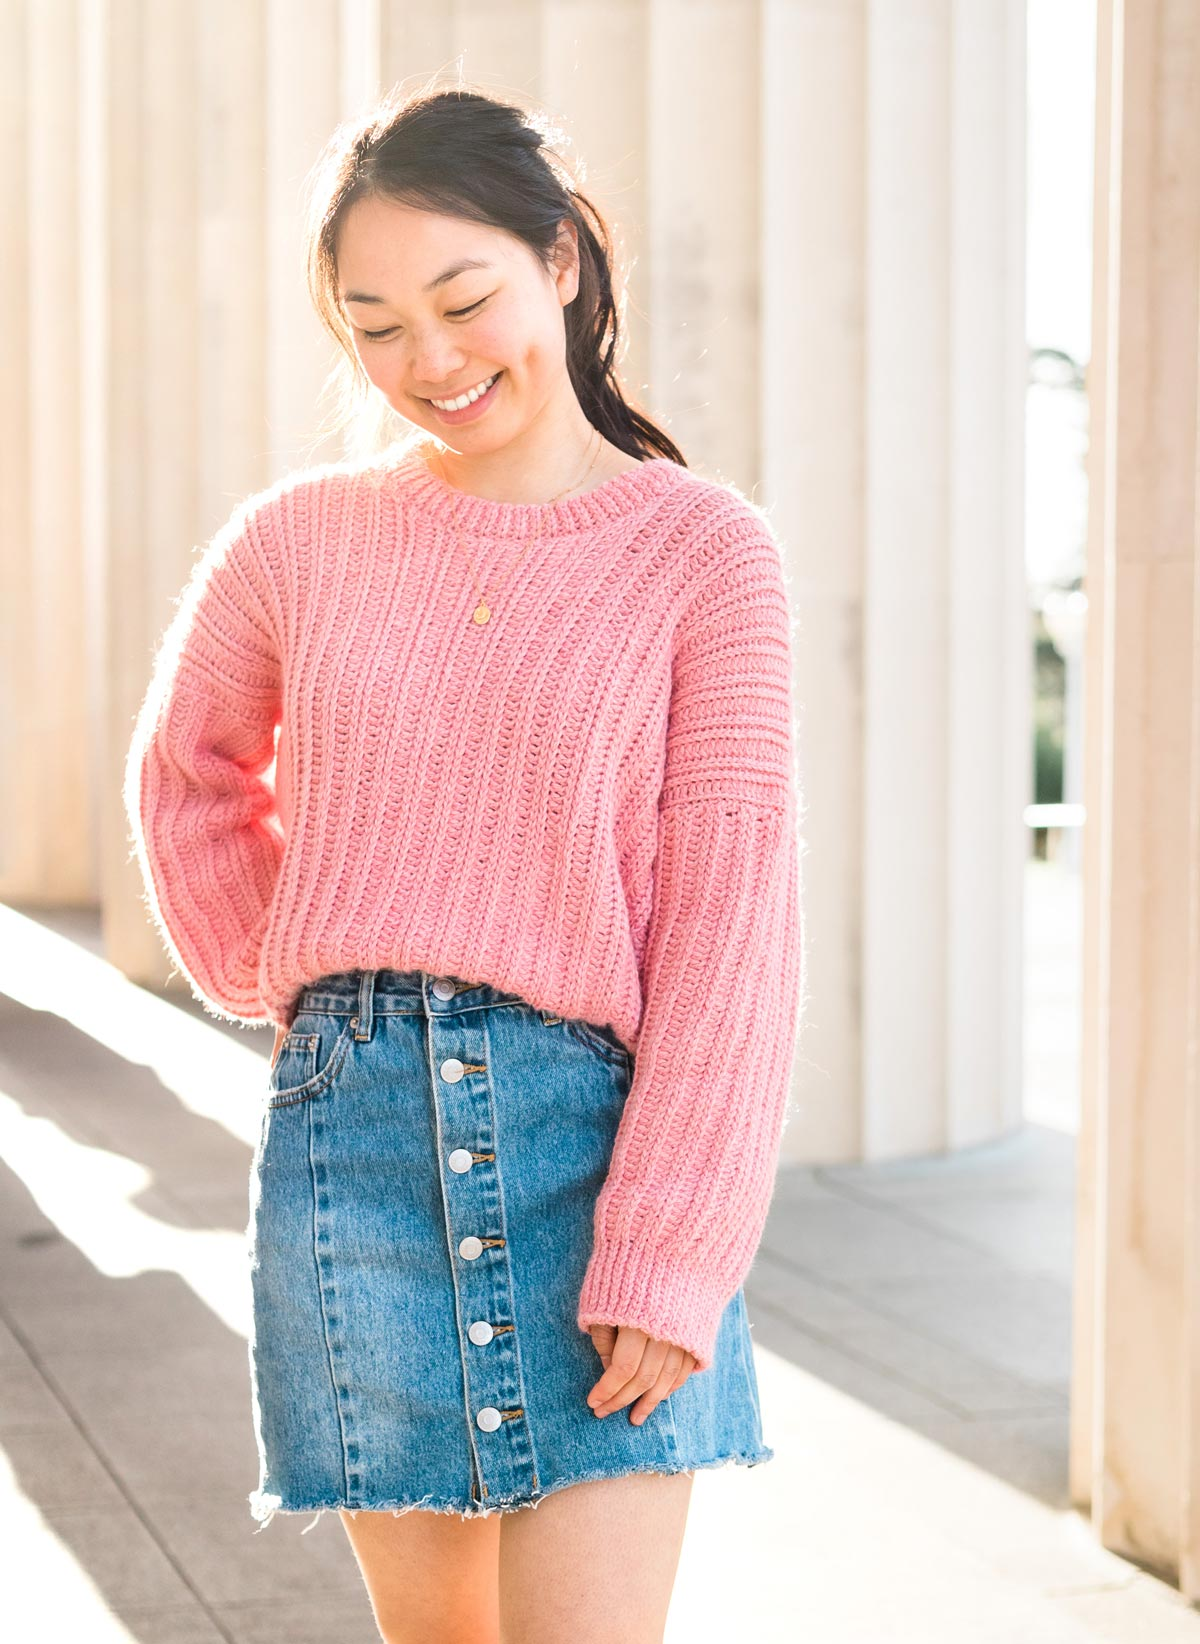 oversized crochet sweater with knit-like stitches with denim mini skirt and gold necklace